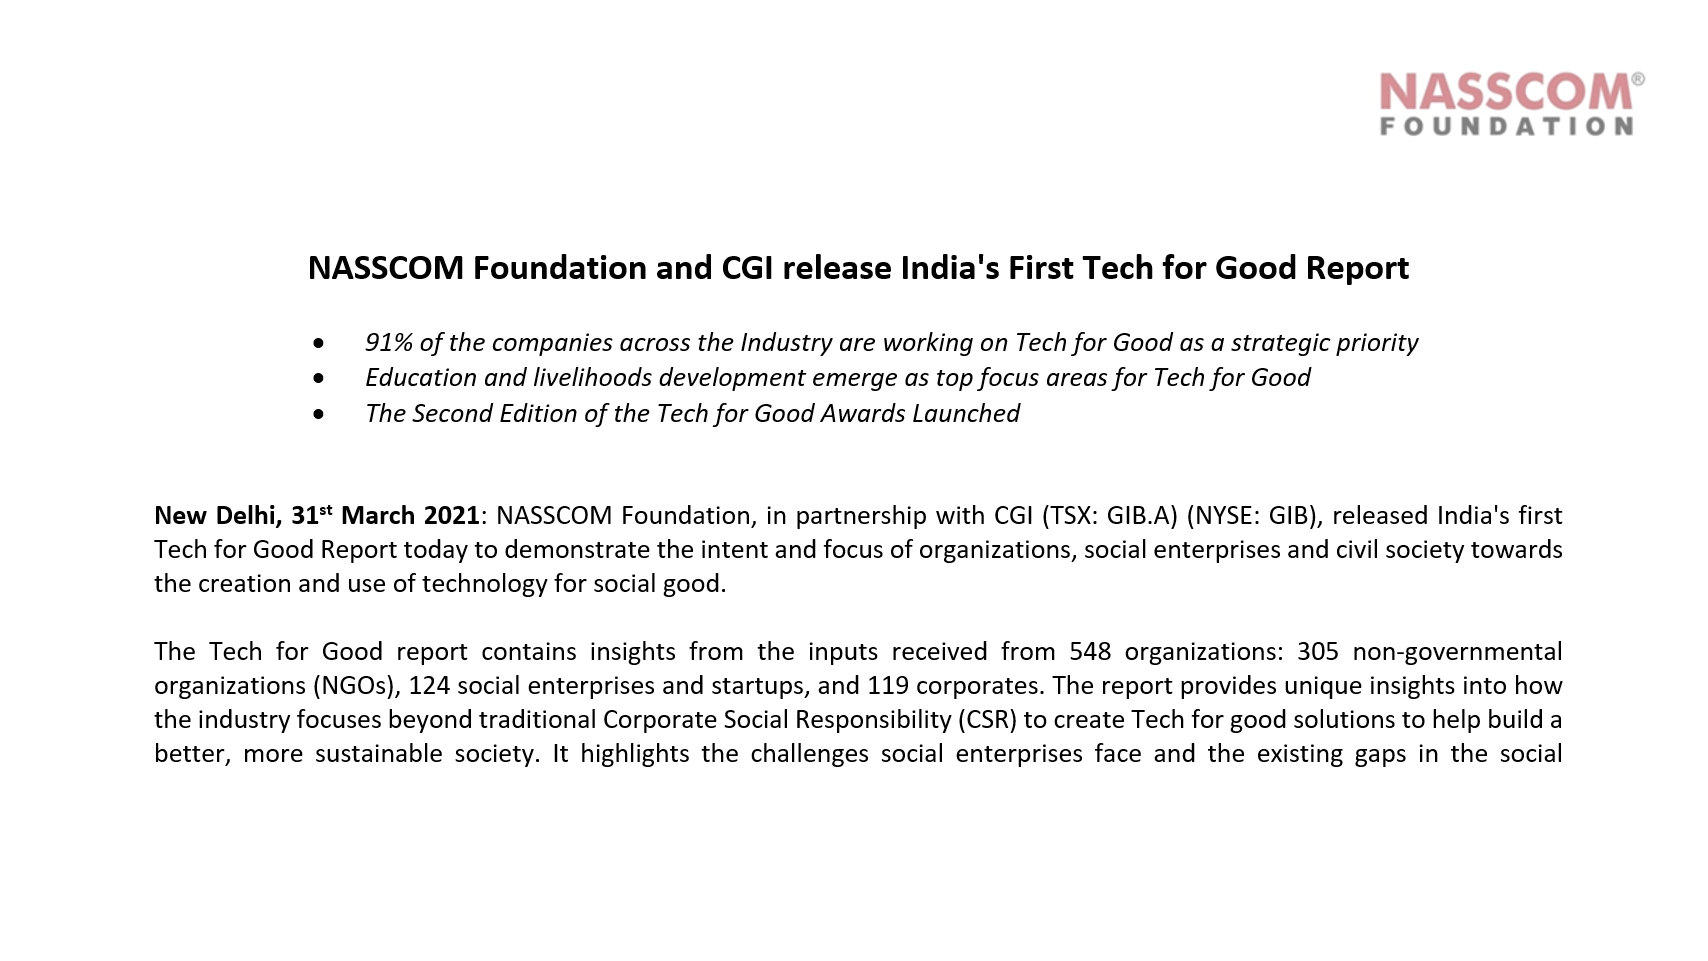 NASSCOM Foundation and CGI release India's First Tech for Good Report